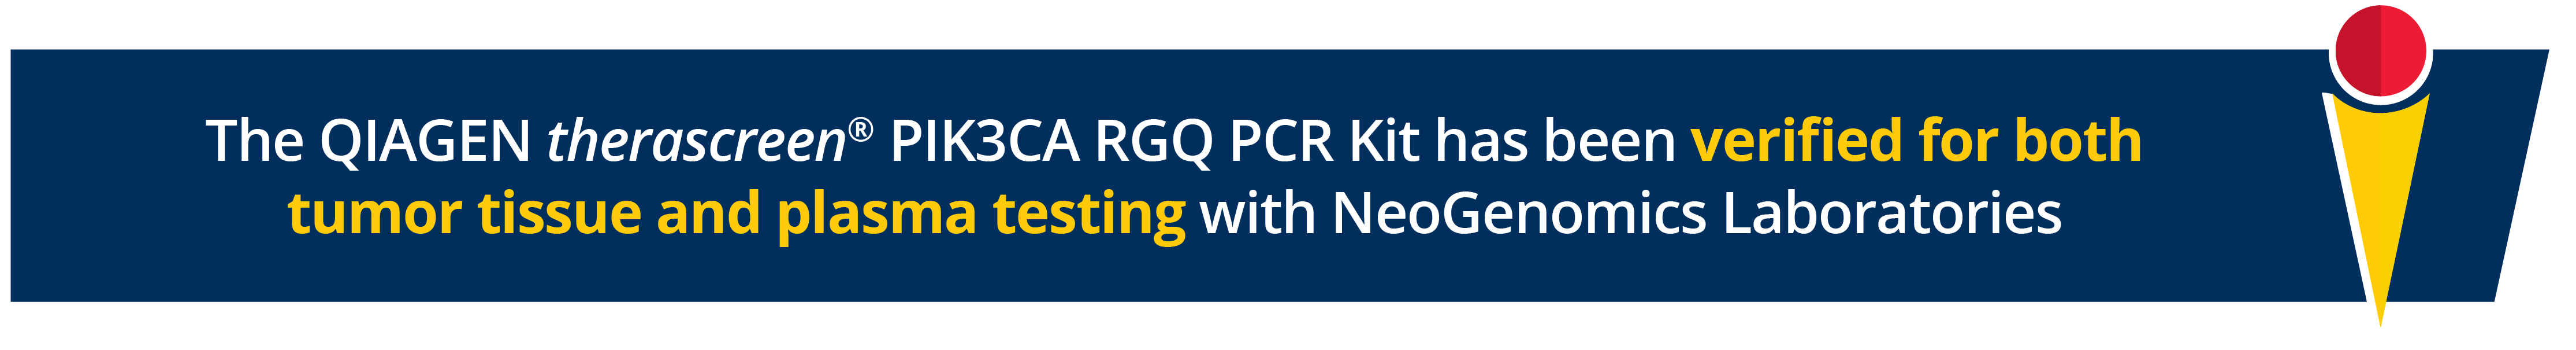 The QIAGEN therascreen® PIK3CA RGQ PCR Kit has been verified for both tumor tissue and plasma testing with NeoGenomics Laboratories